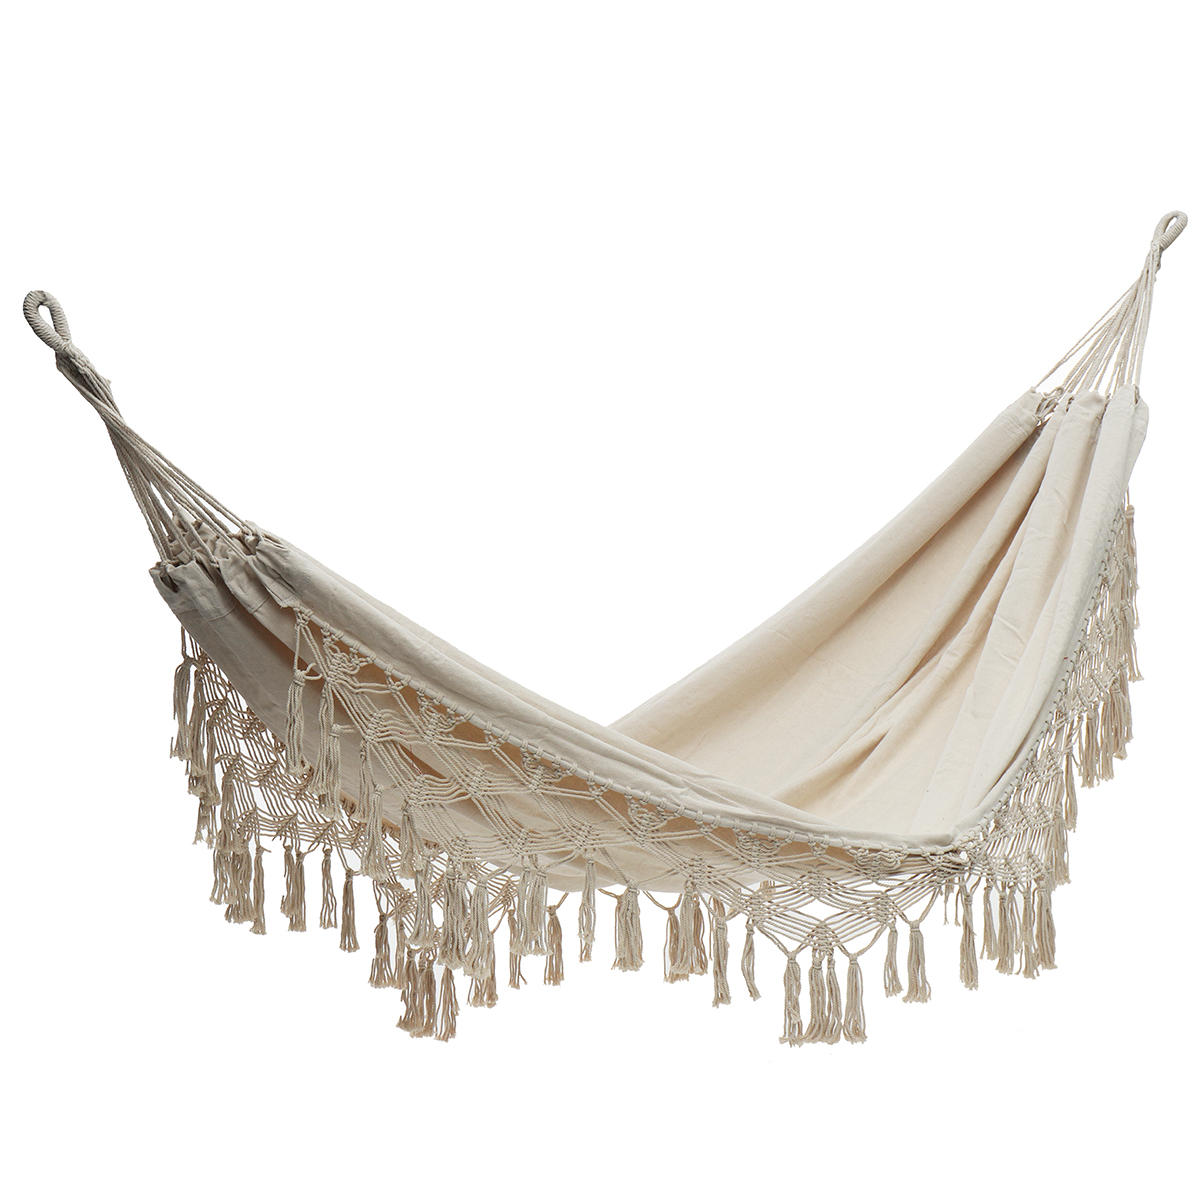 320x150cm Outdoor Tassels Double Hammock Garden Patio Beach Cotton Swing Chair Hanging Bed Camping Travel Max Laod 150kg